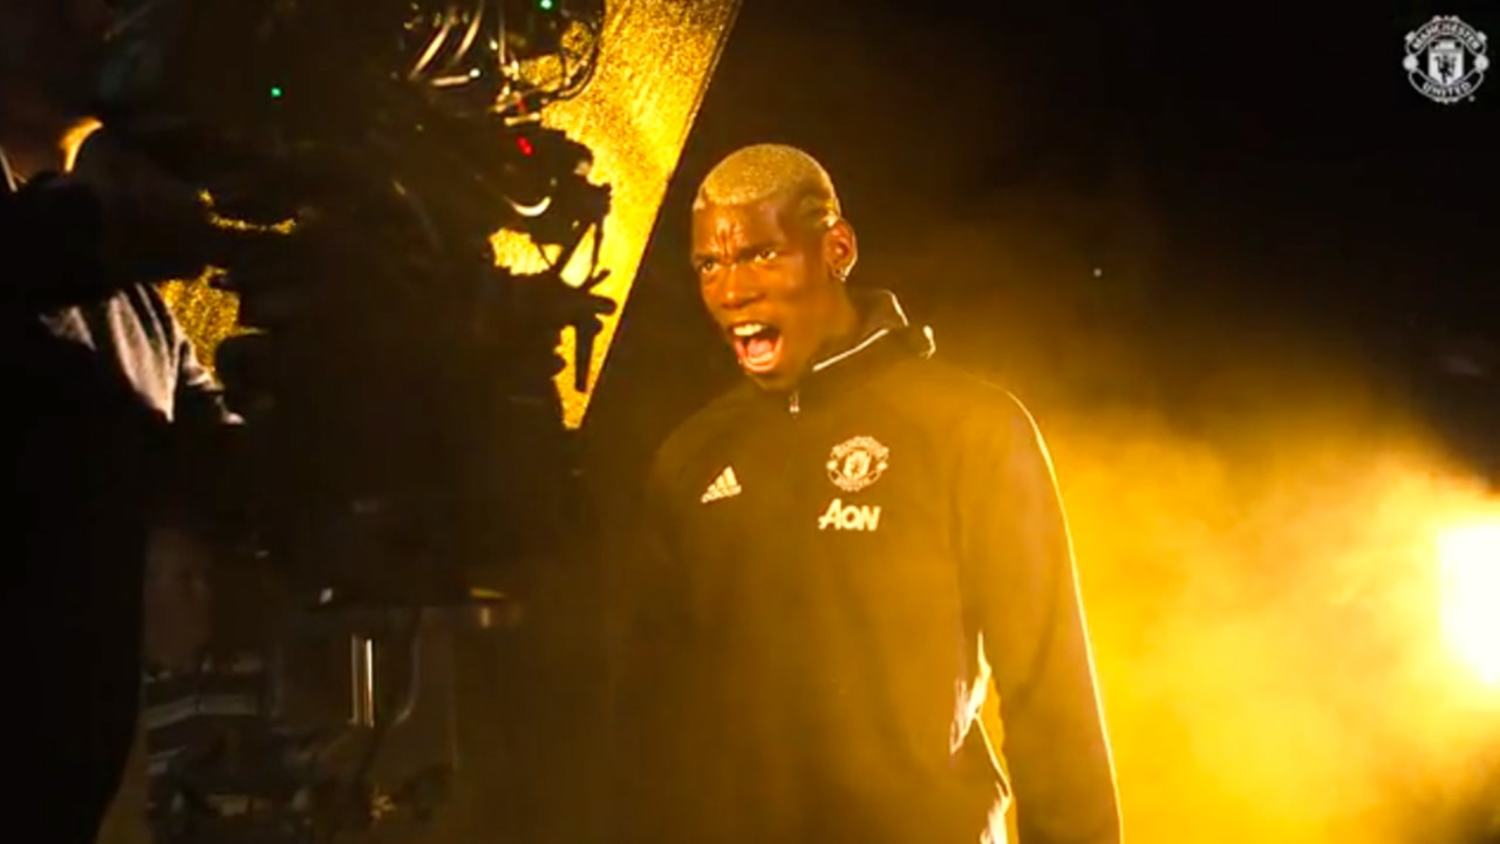 Man United Release Video Of Pogba's First Day At The Club